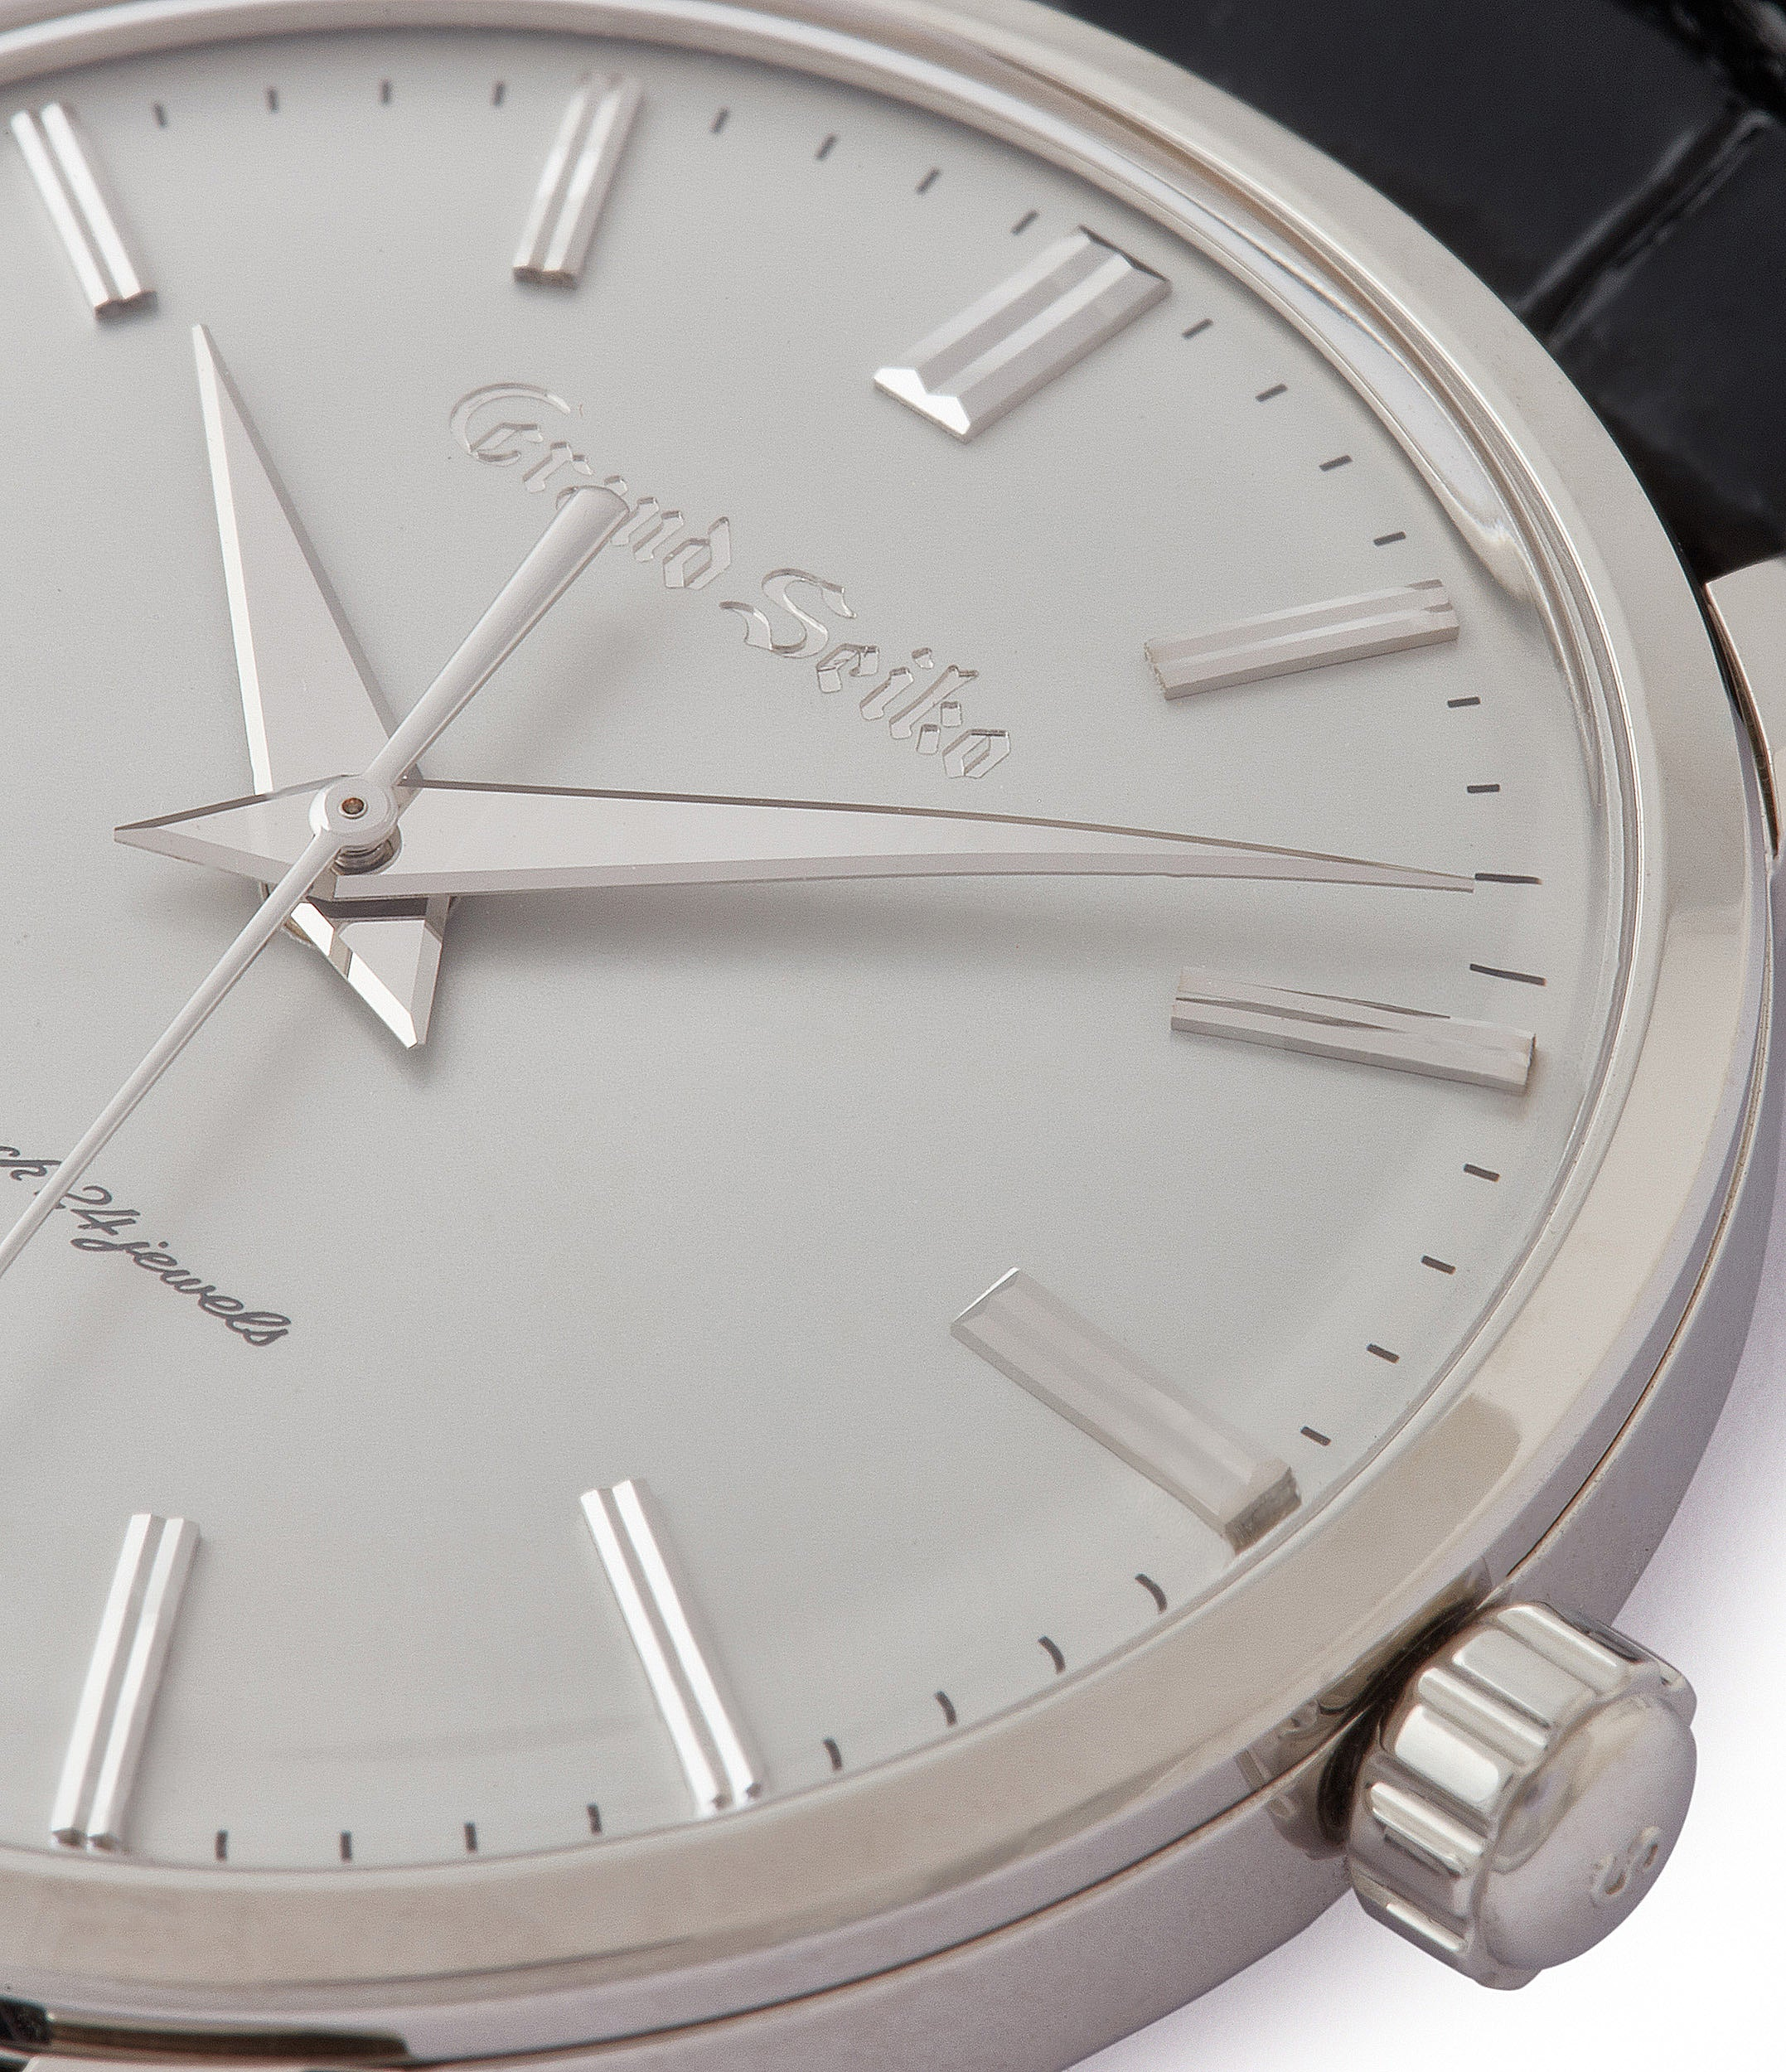 steel hands Grand Seiko SBGW251 limited edition platinum time-only dress watch Japanese-made full set at A Collected Man London UK specialist of rare watches